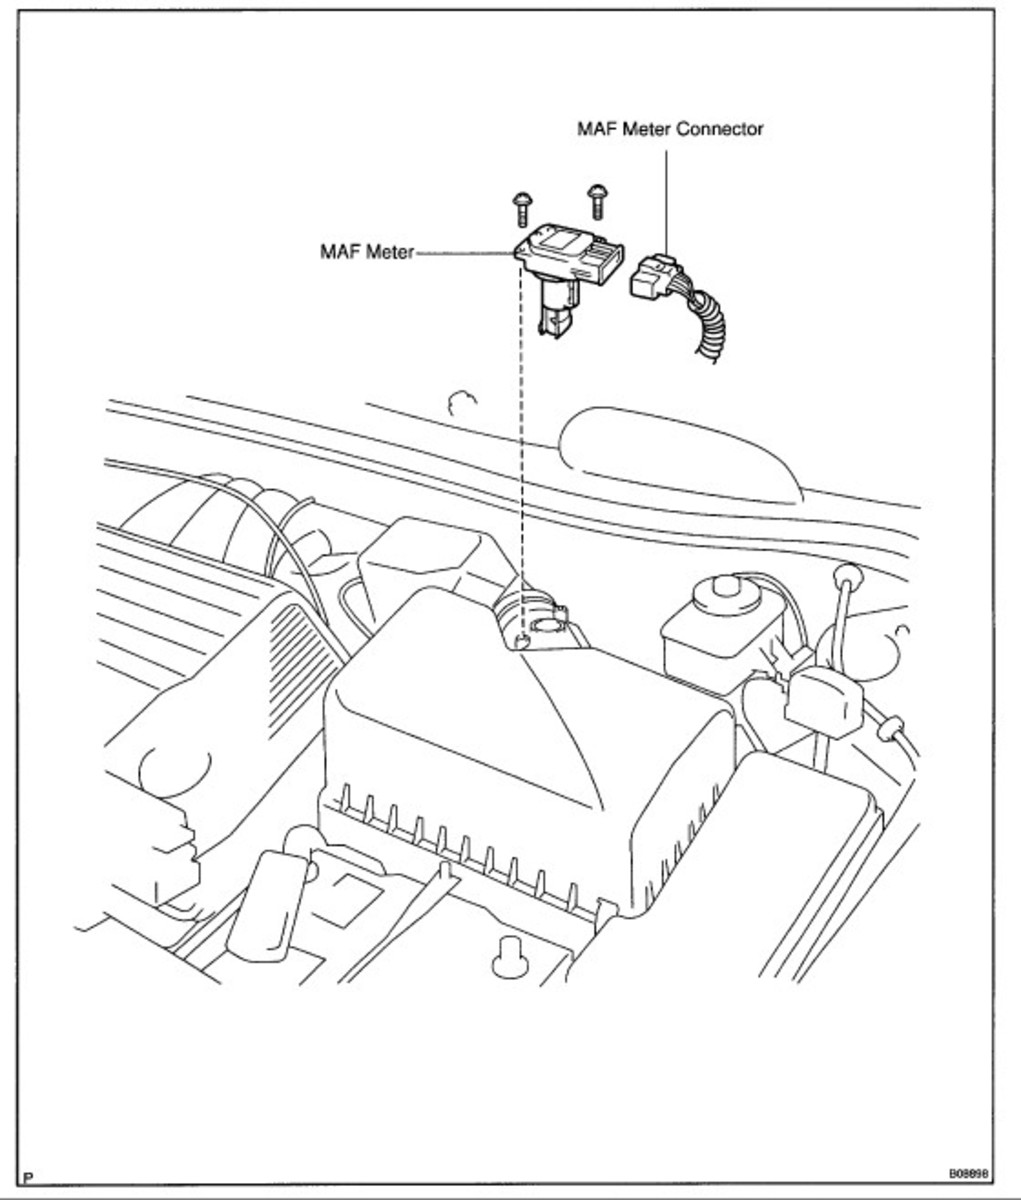 2004 Duramax Injector Wiring Diagram